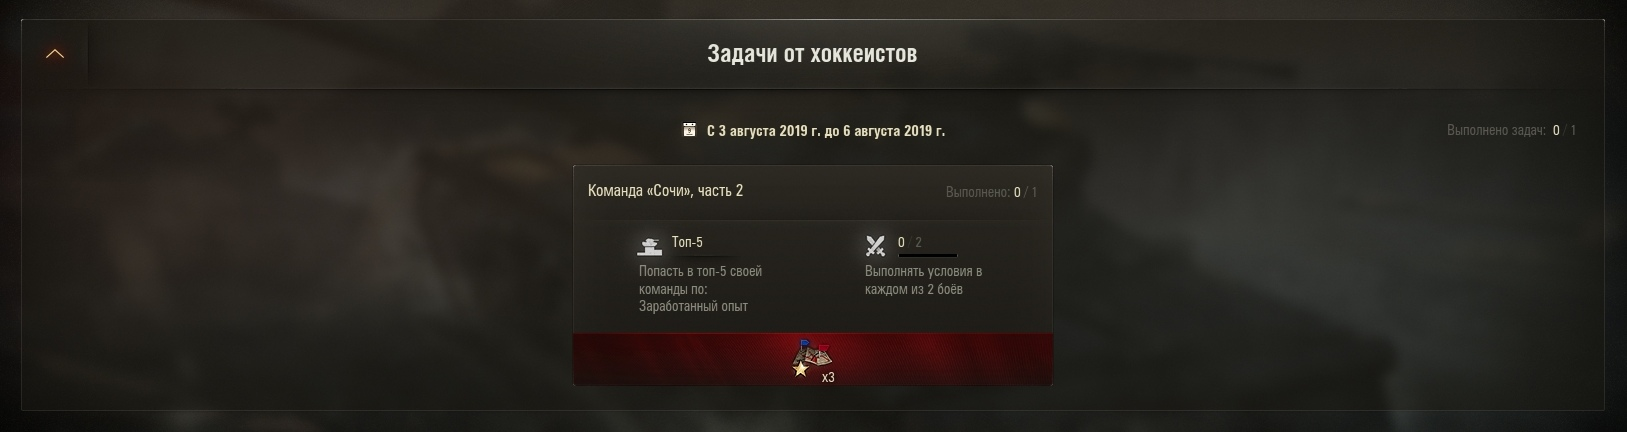 бонус код для world of tanks на 2016 август